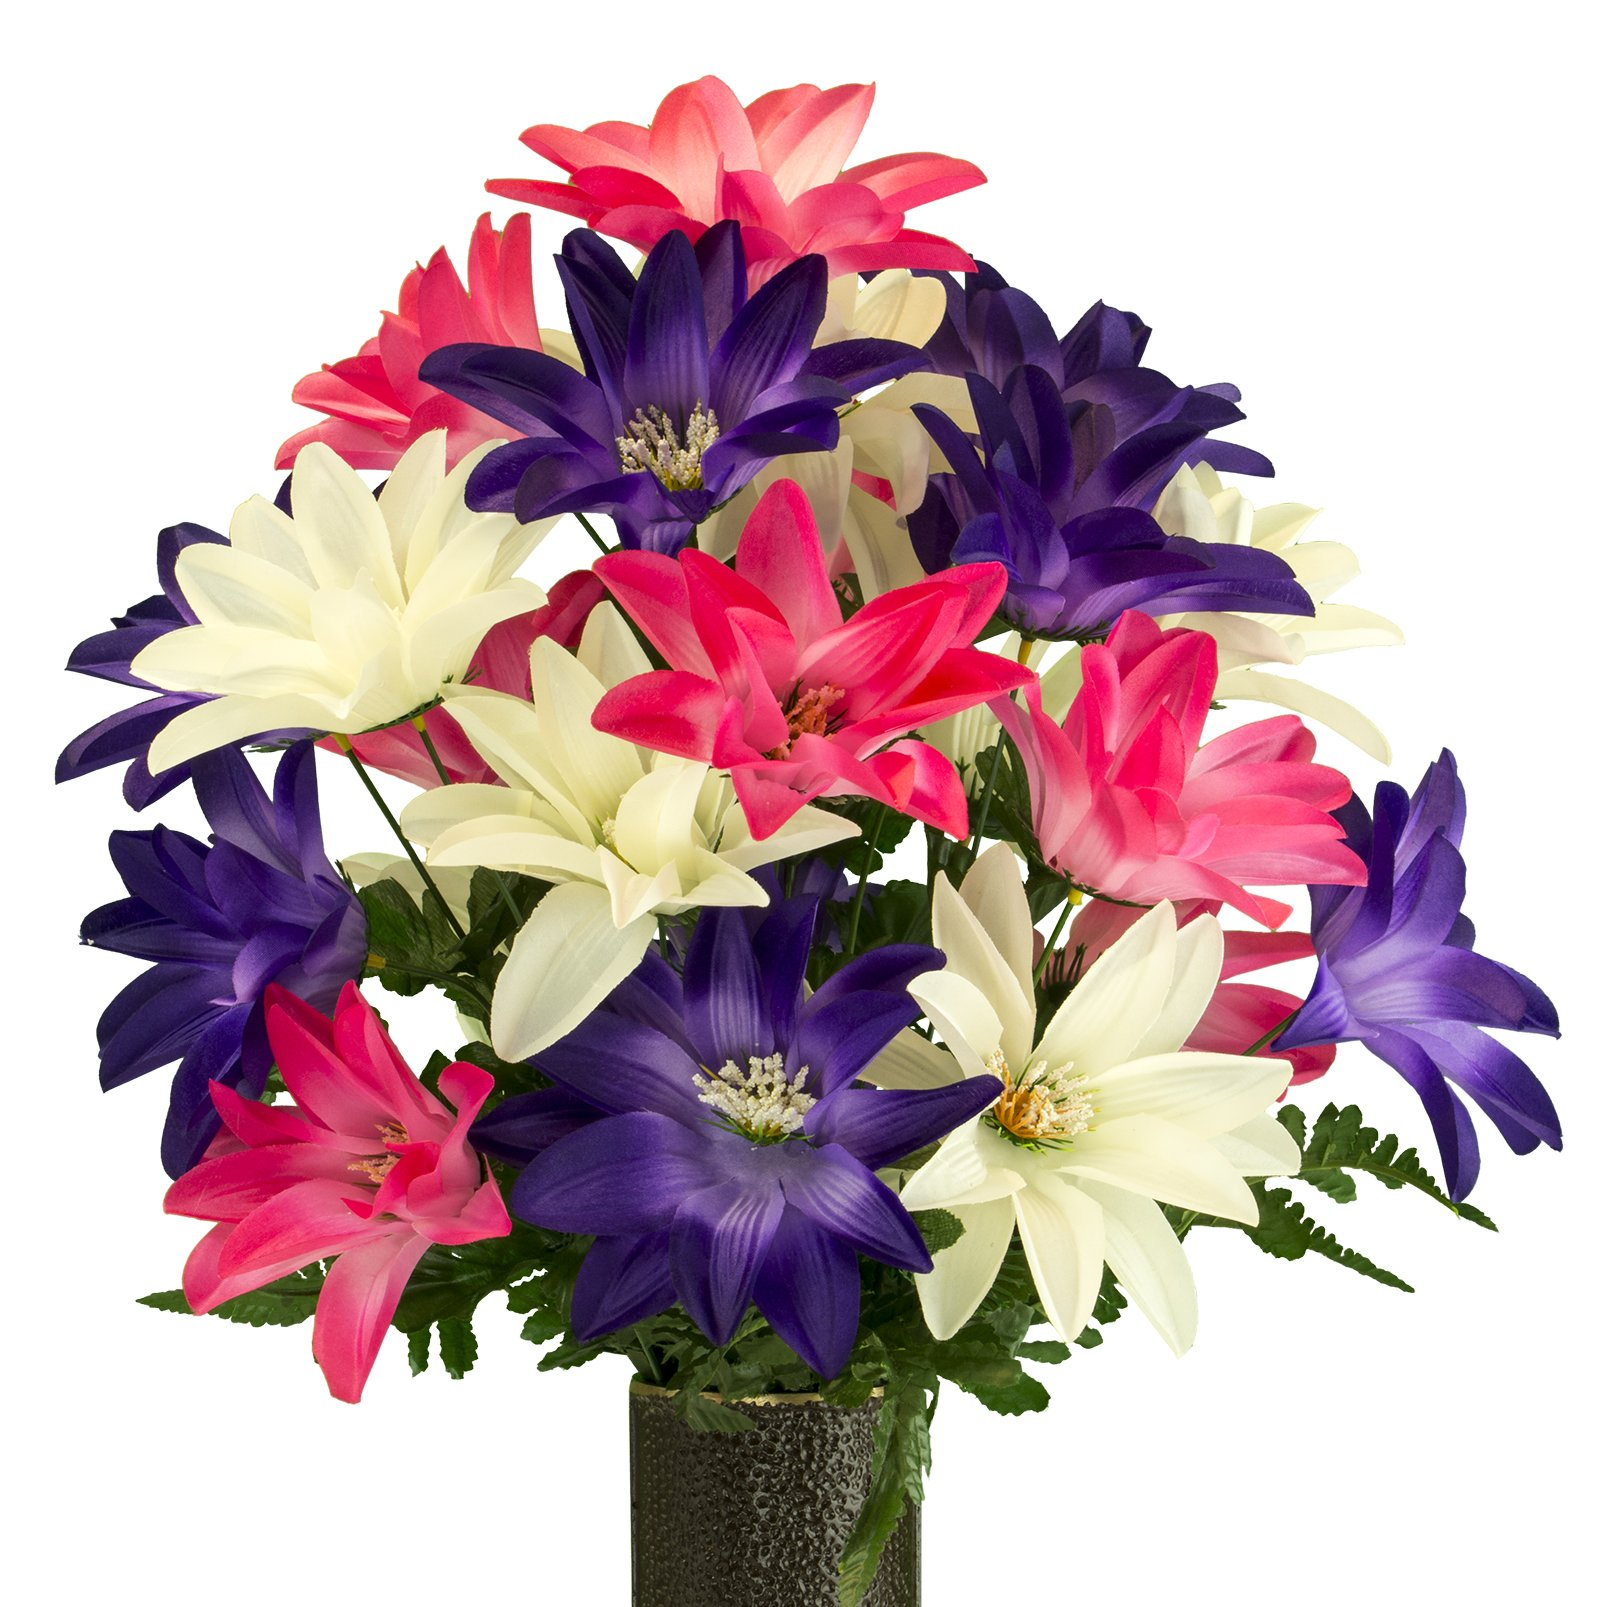 Pink-White-Purple-Dahlia-Artificial-Bouquet-featuring-the-Stay-In-The-Vase-Designc-Flower-Holder-MD2076